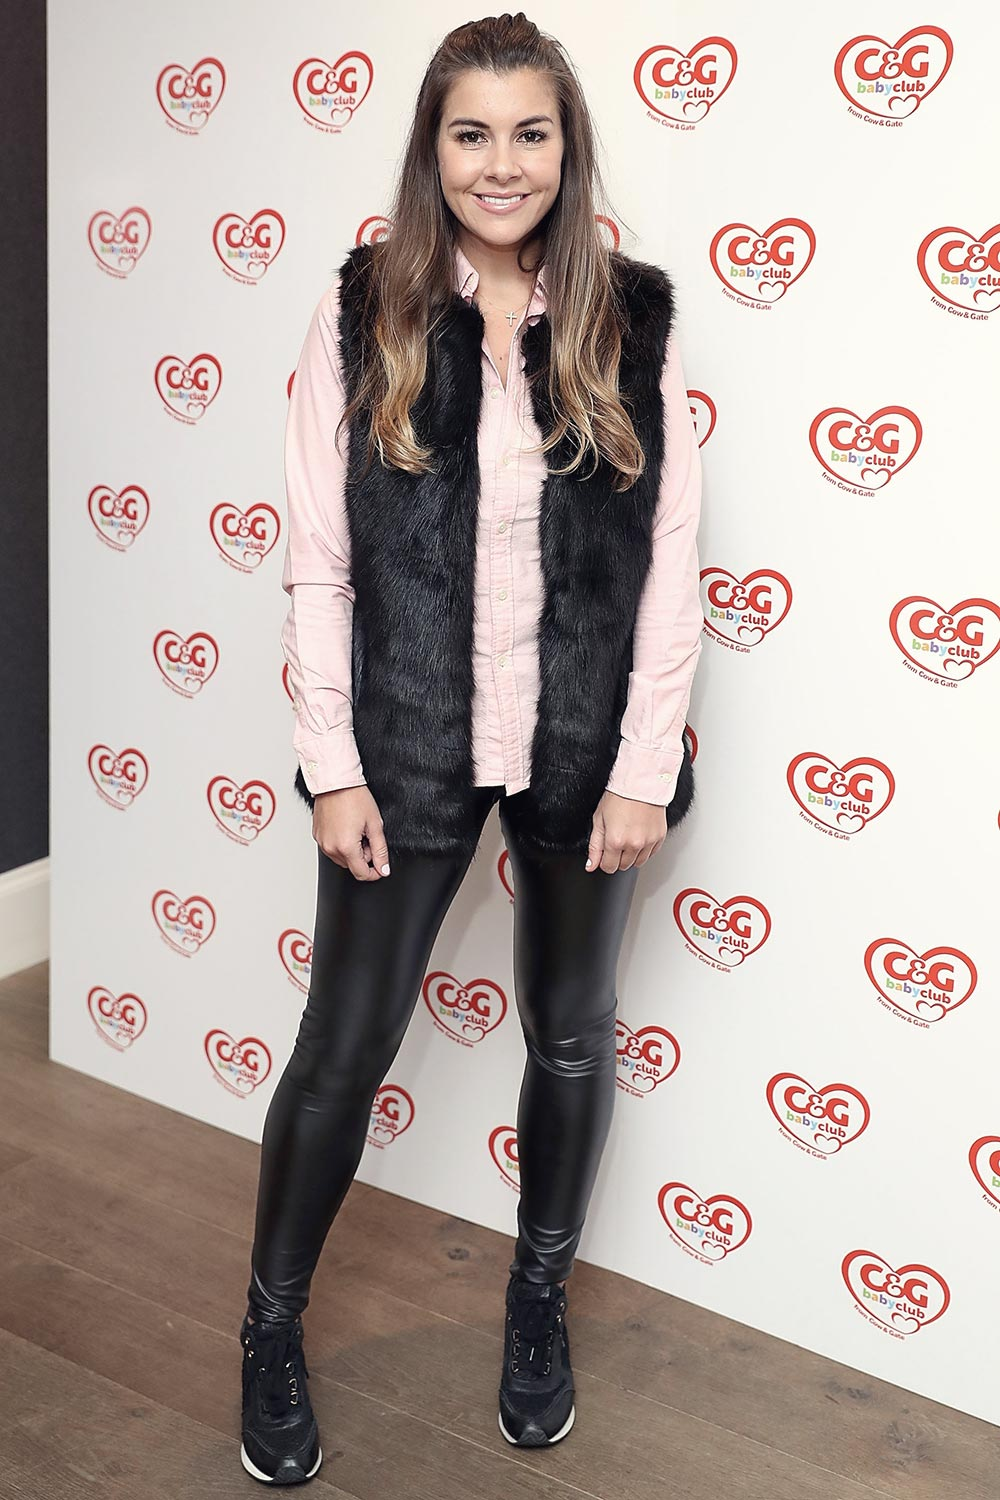 Imogen Thomas Attends The C Amp G Baby Club The Happy Song